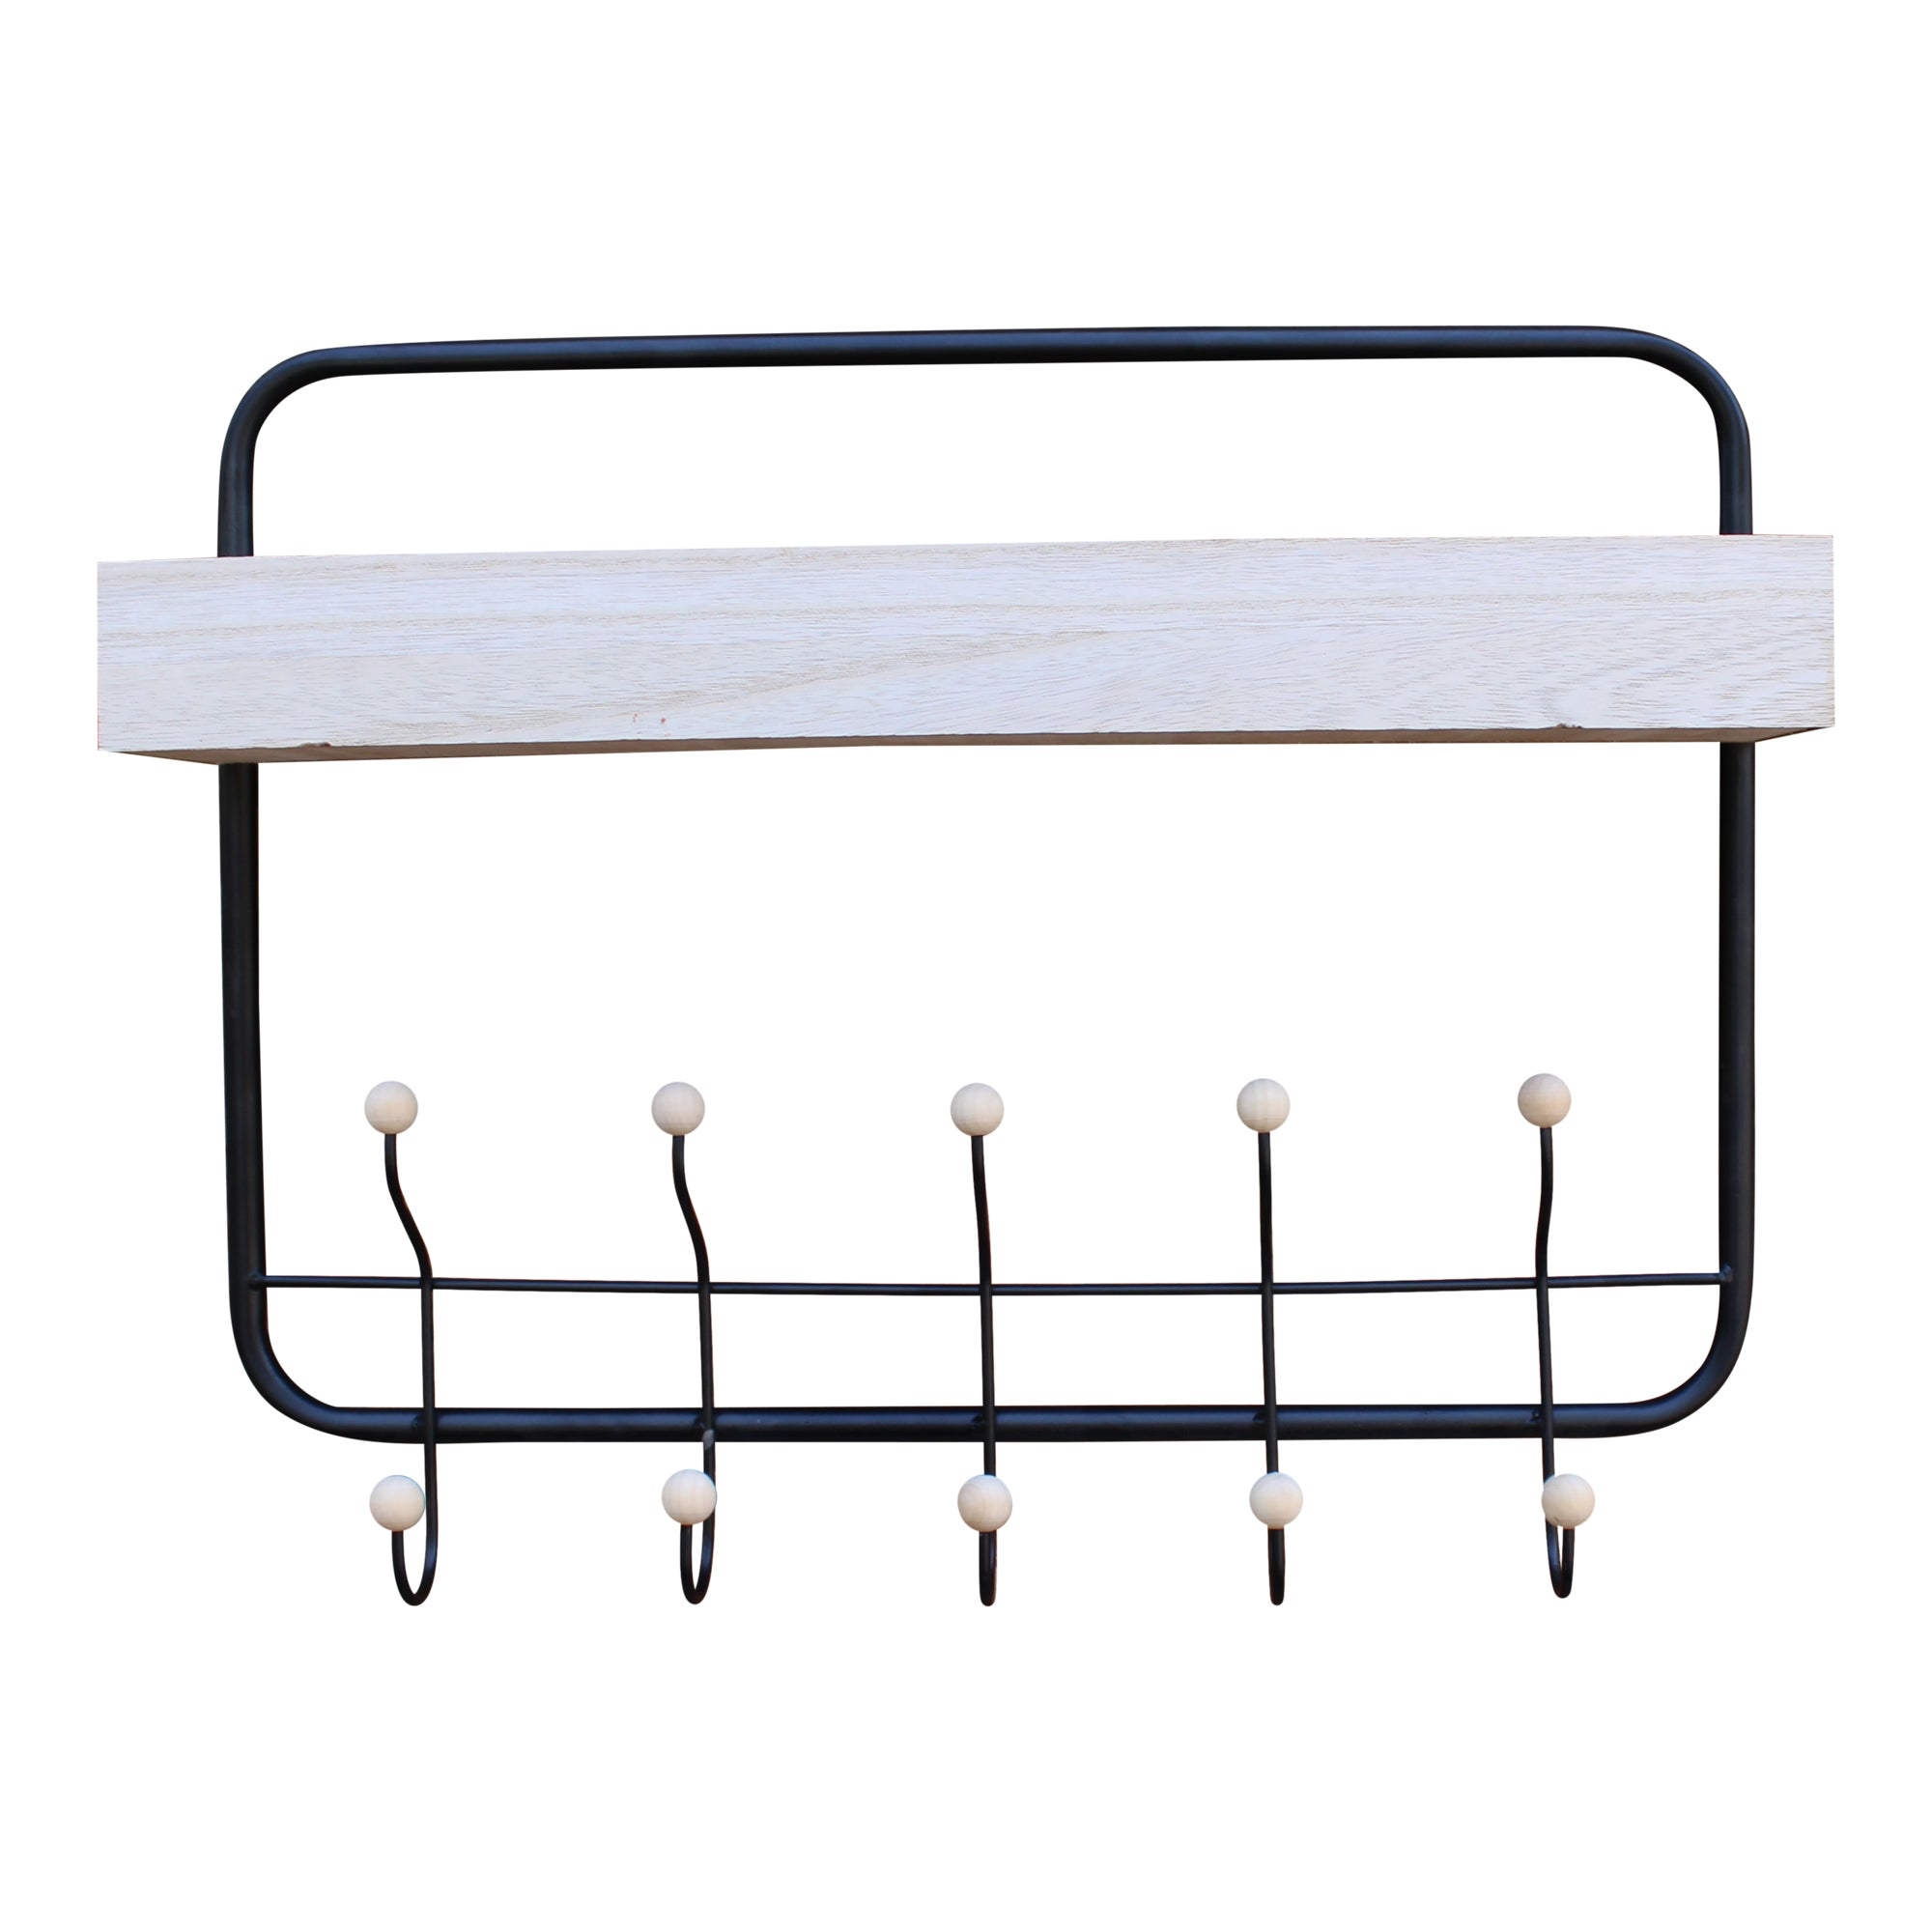 Wall Hanging Shelf With Coat Hooks-Shelving-The Modern Home Shop